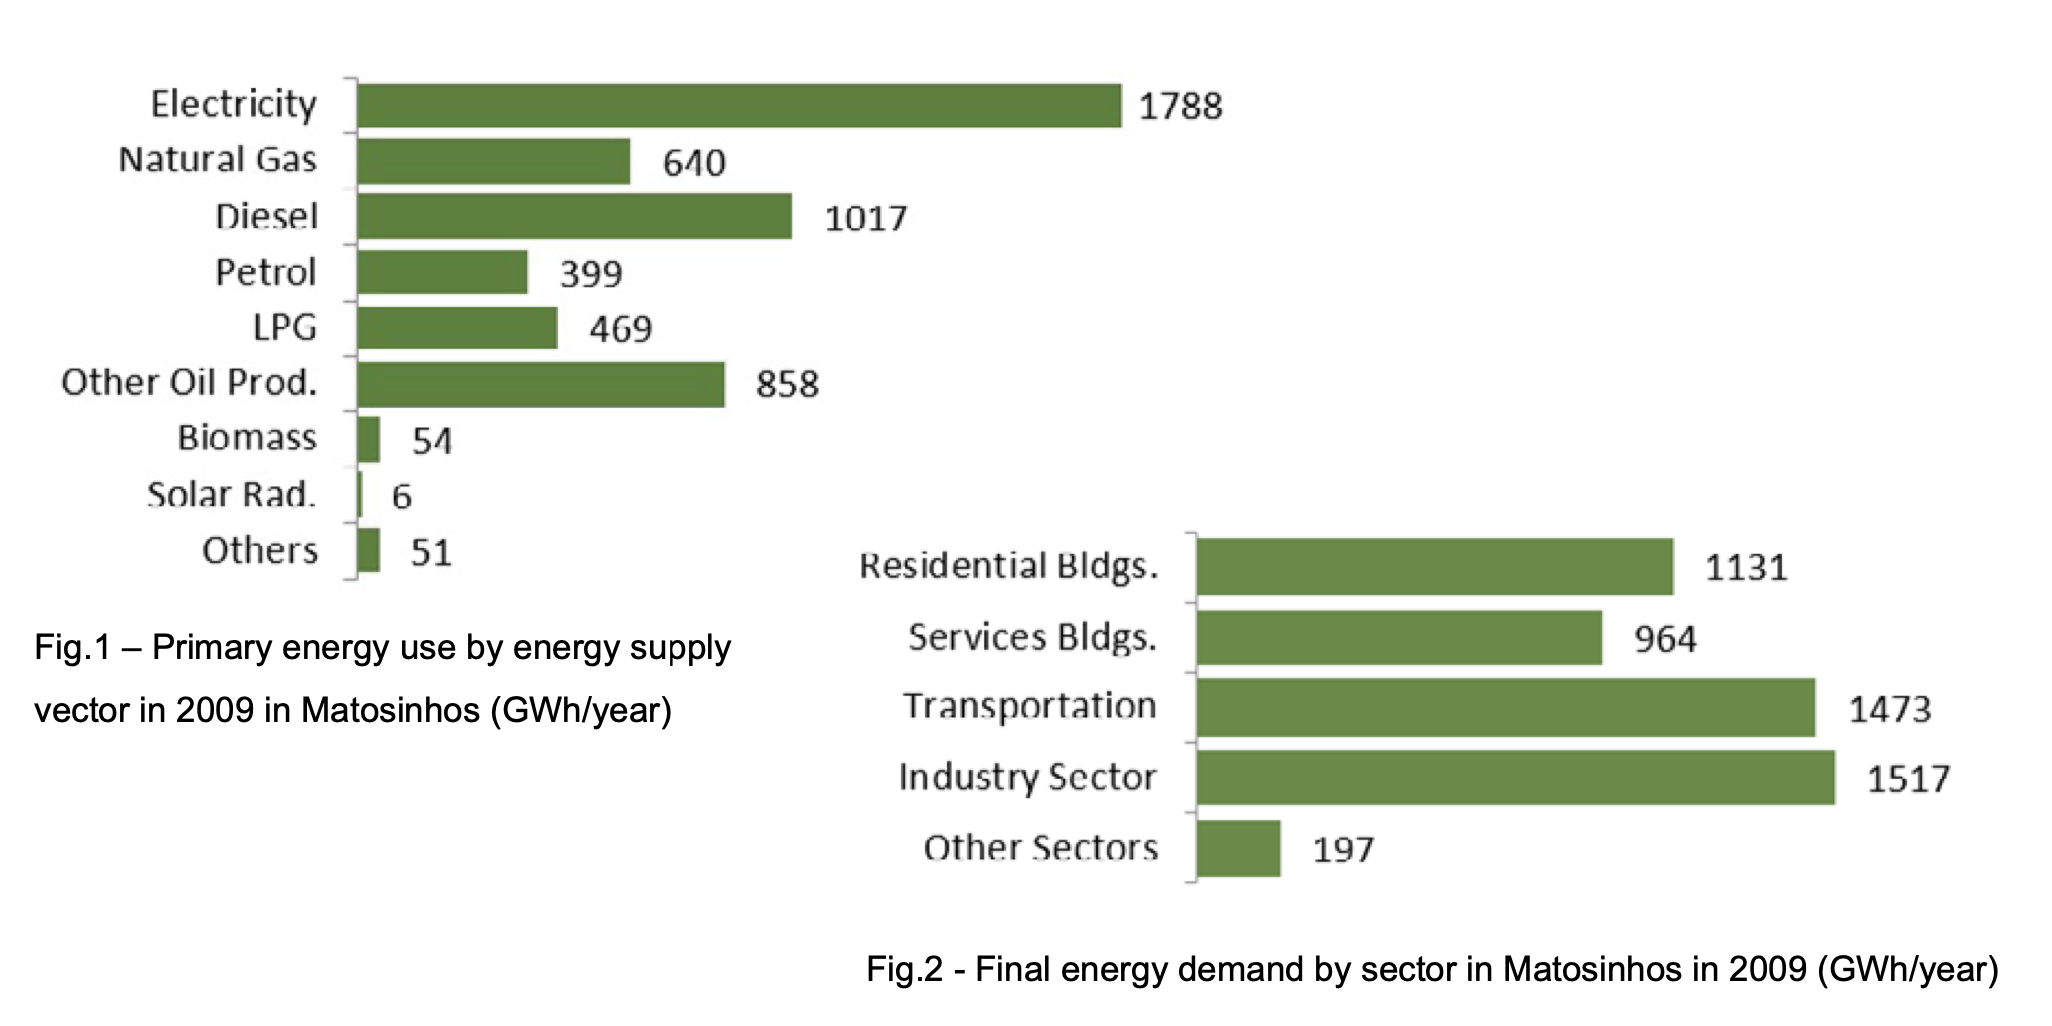 Primary energy use by energy supply and final energy demand by sector in Matosinhos